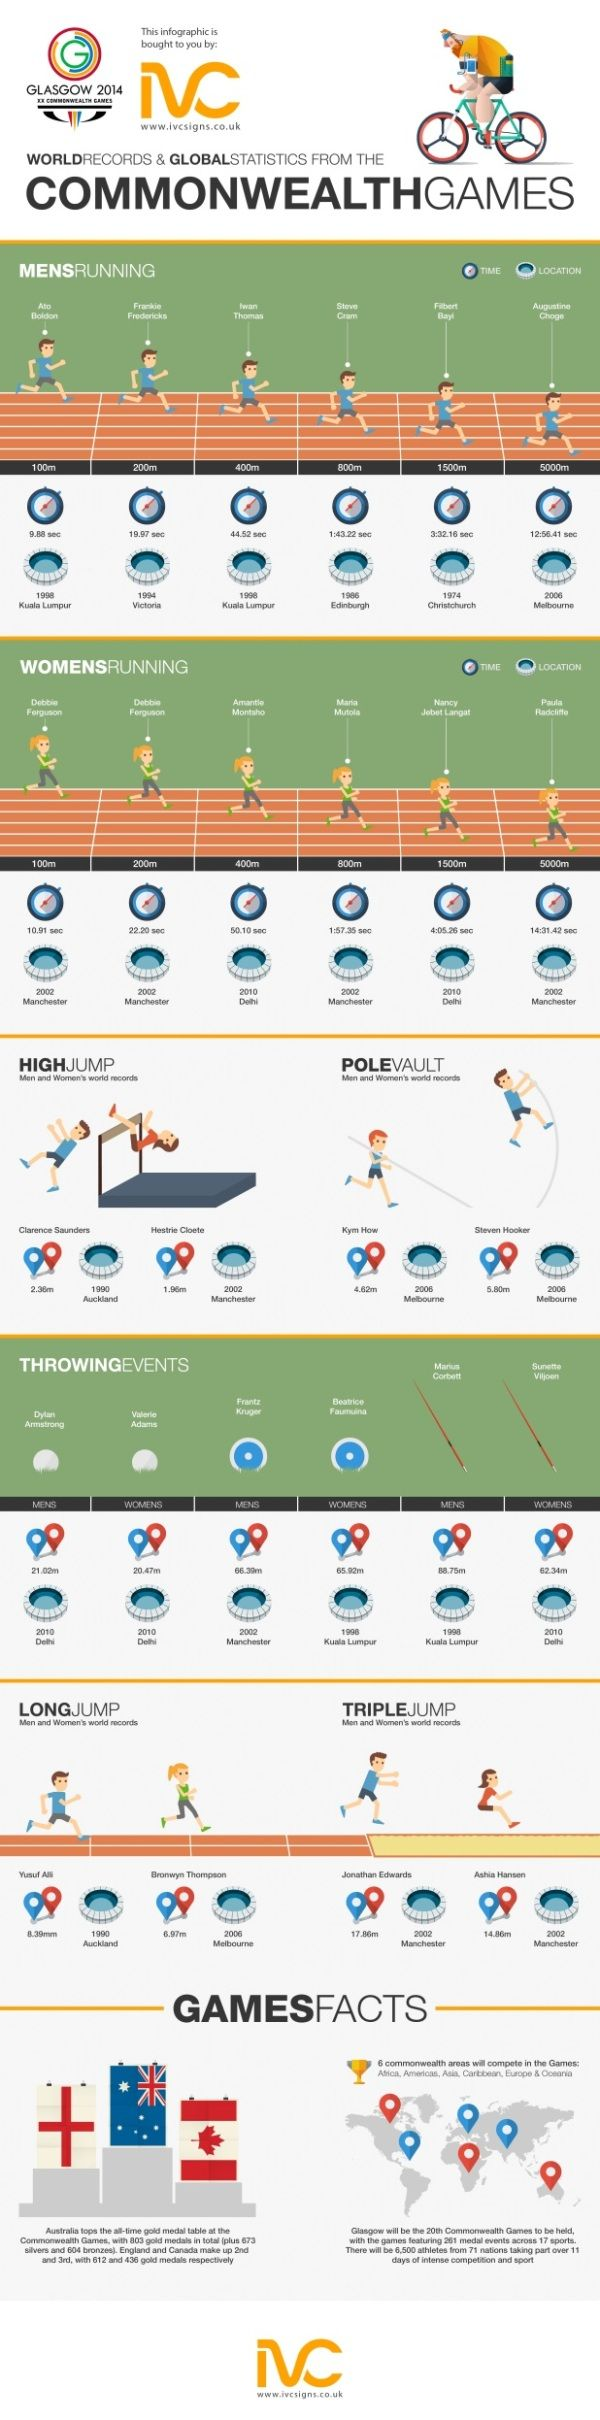 Commonwealth Games - http://www.coolinfoimages.com/infographics/commonwealth-games/